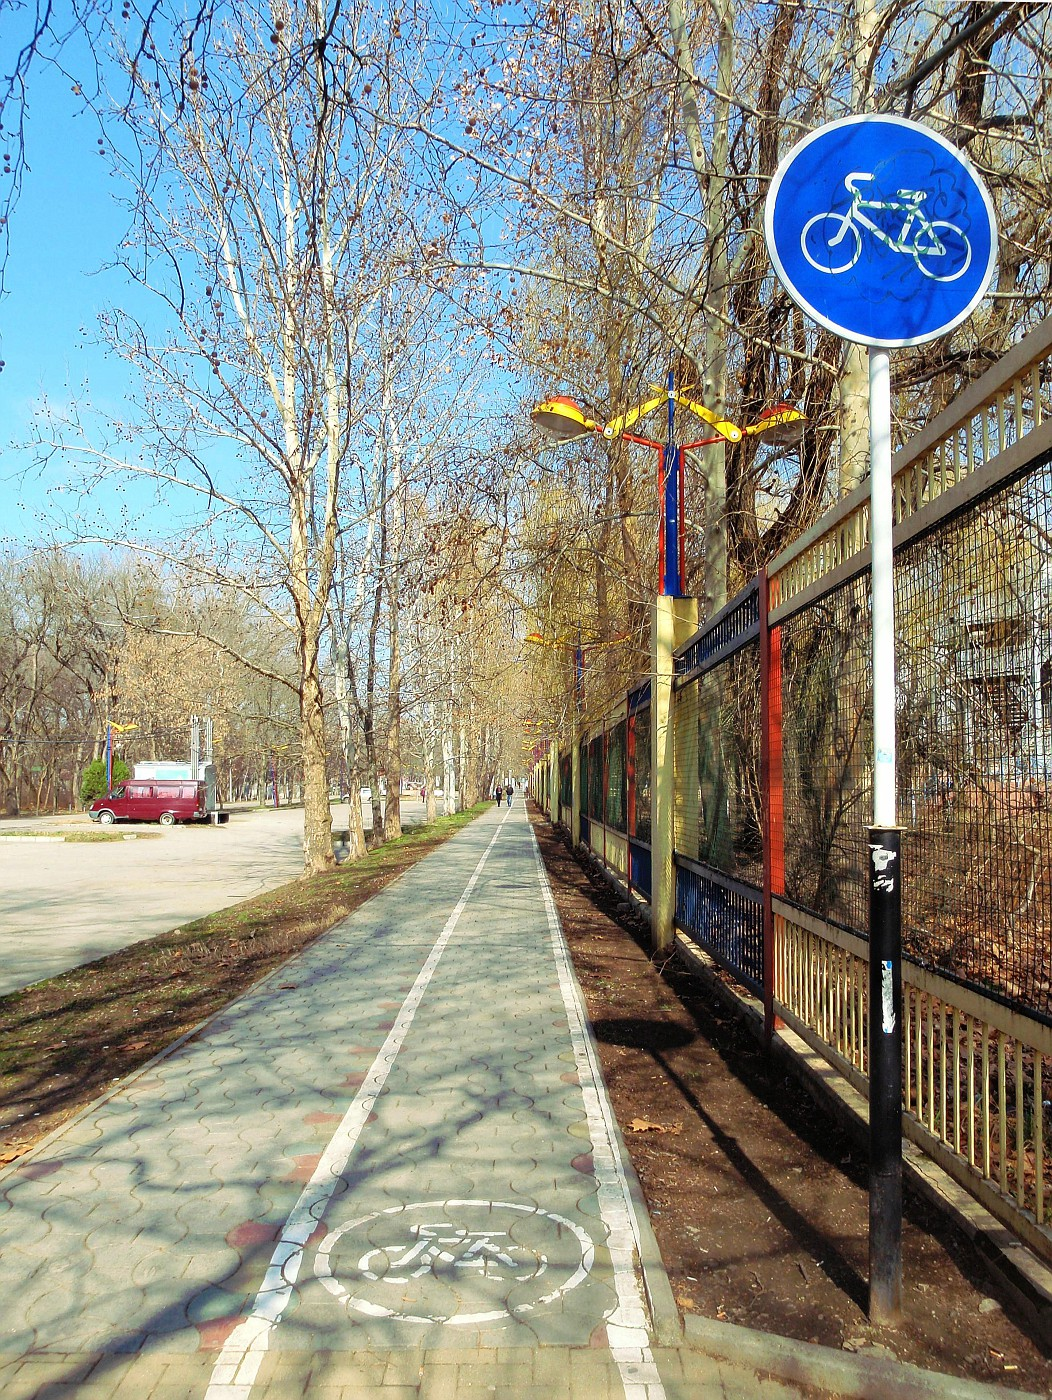 In Krasnodar there are cycle tracks!